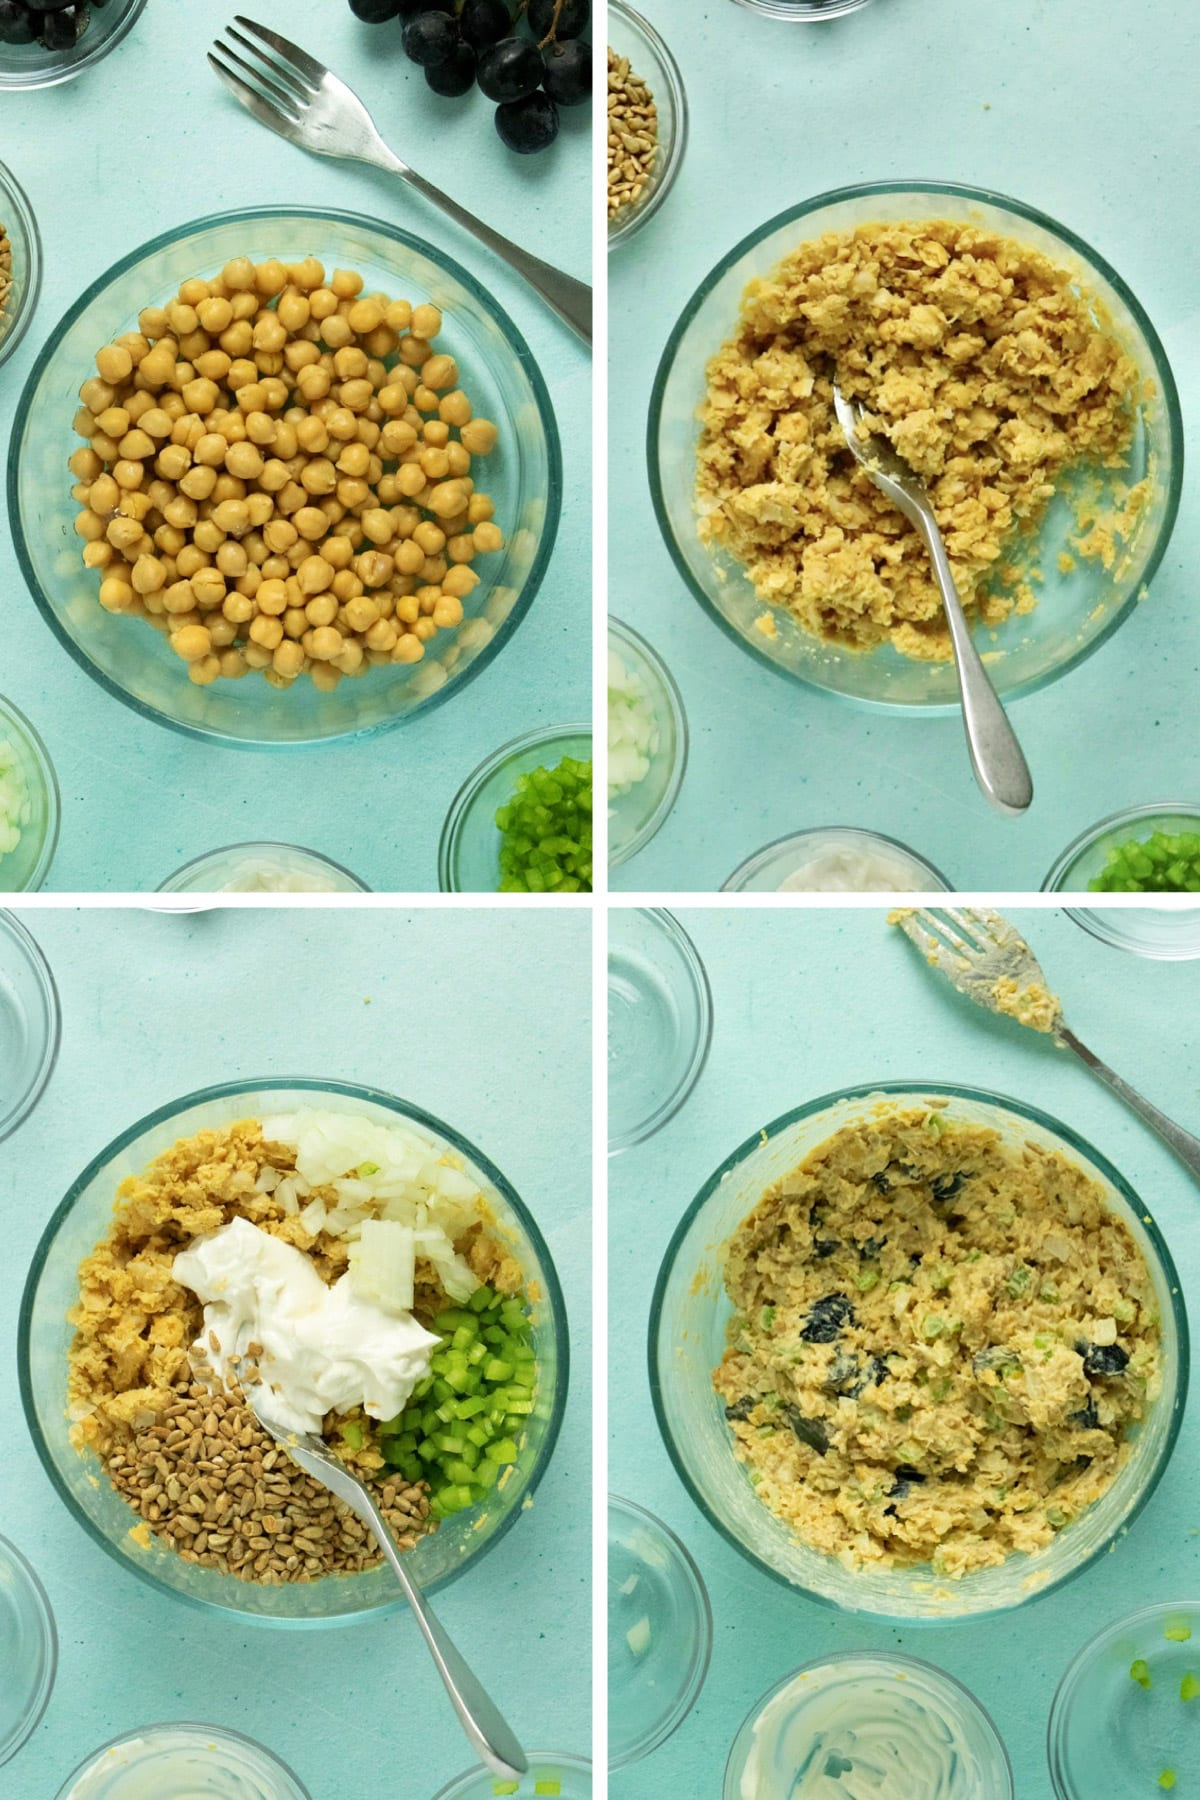 image collage of a mixing bowl with: whole chickpeas; mashed chickpeas; the celery, mayo, onion, and celery on top; and mashed chickpea salad all mixed together with the grapes